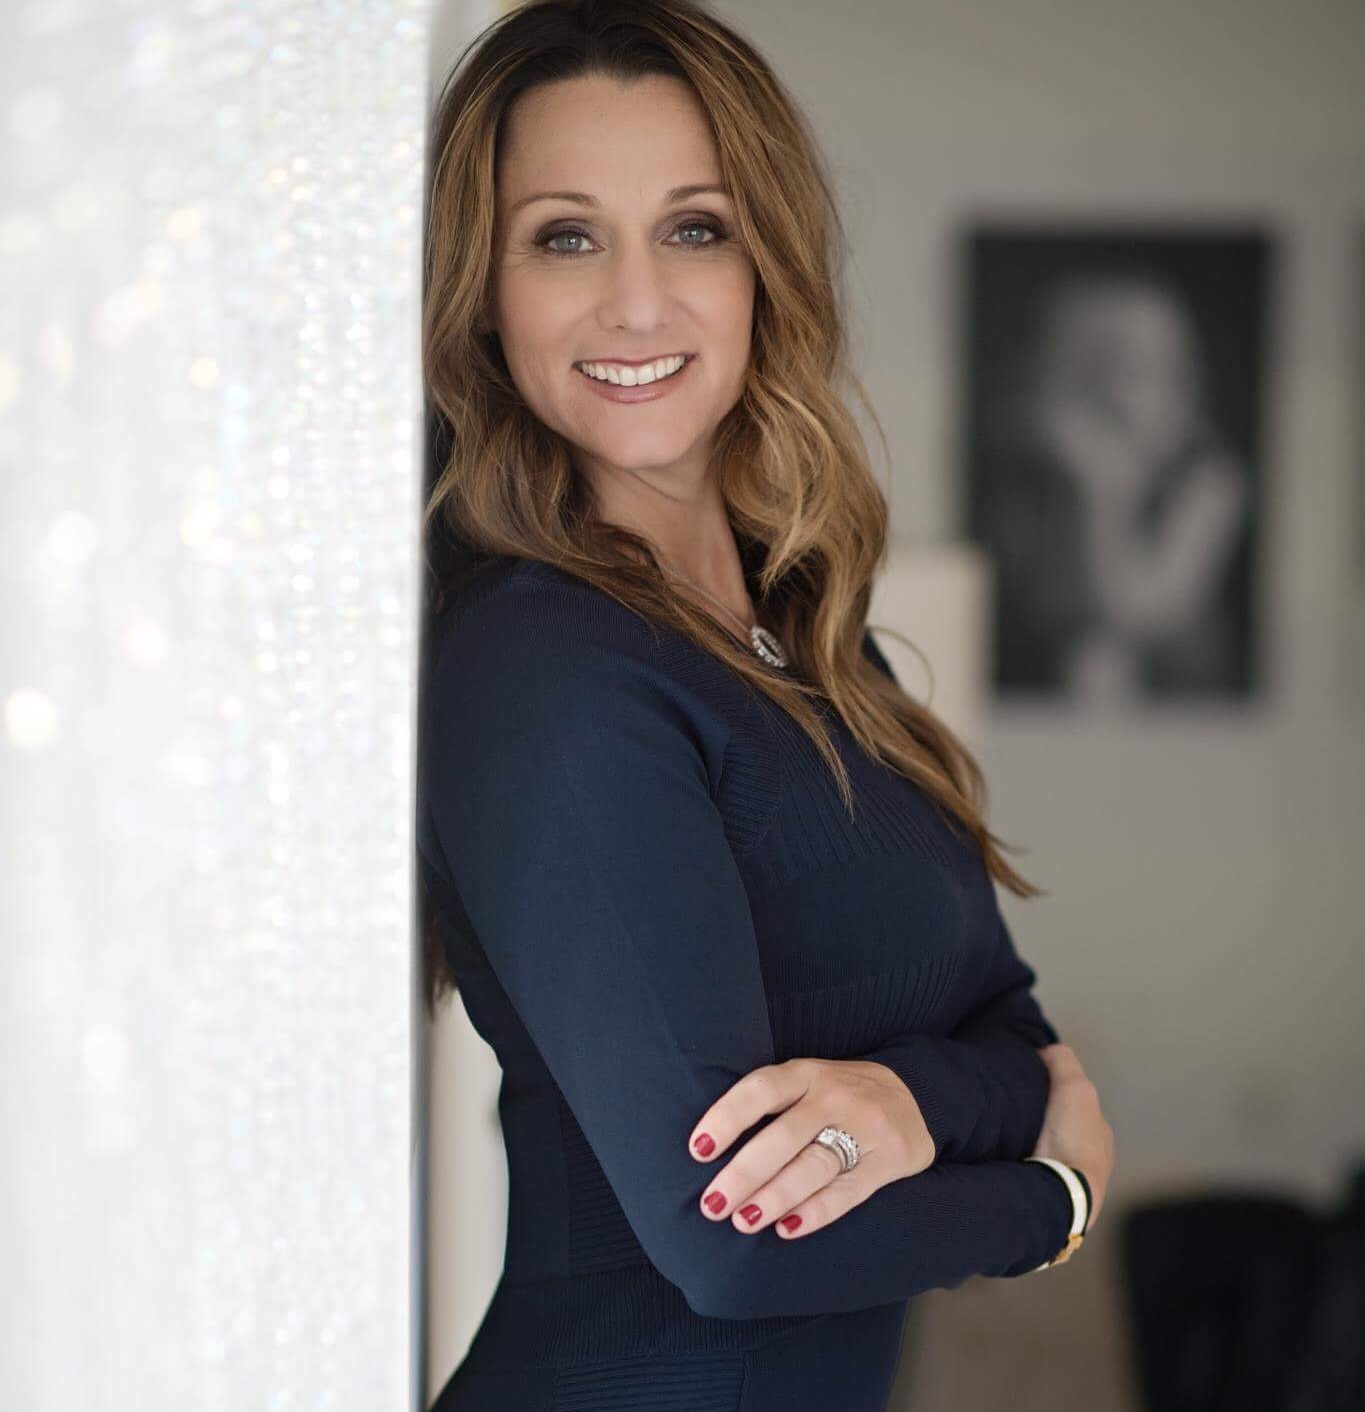 Kristen Di Zinno found herself taking an unconventional path to success as she sought to start a business as a Rodan + Fields Independent Consultant.